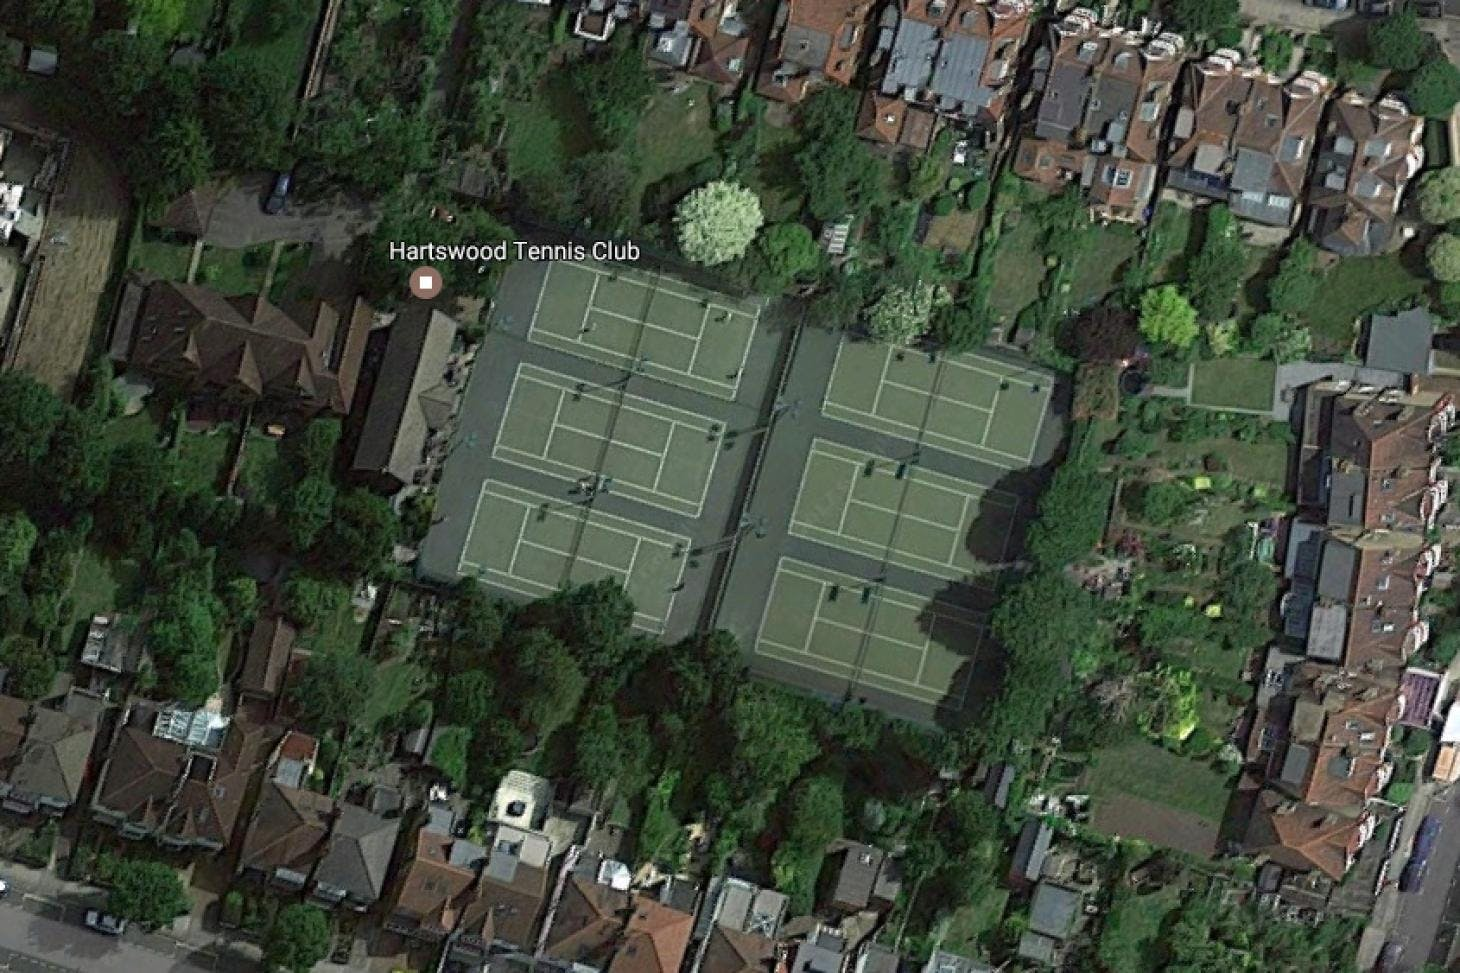 Hartswood Tennis Club Outdoor | Hard (macadam) tennis court